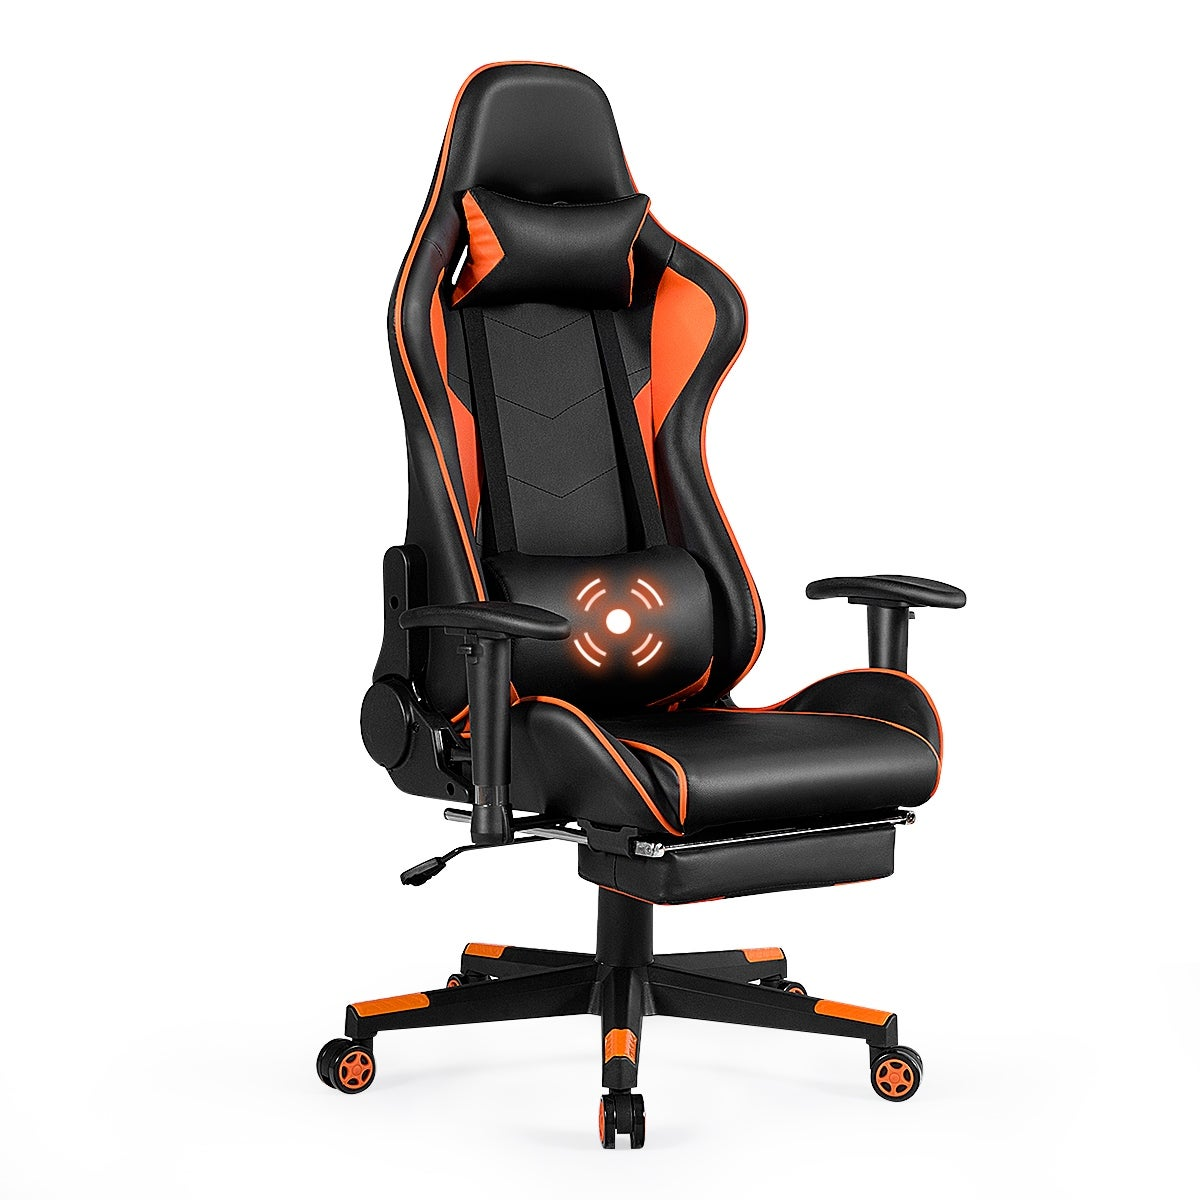 Costway Massage Gaming Chair Reclining Racing Chair w/ Massage Lumbar Support & Footrest